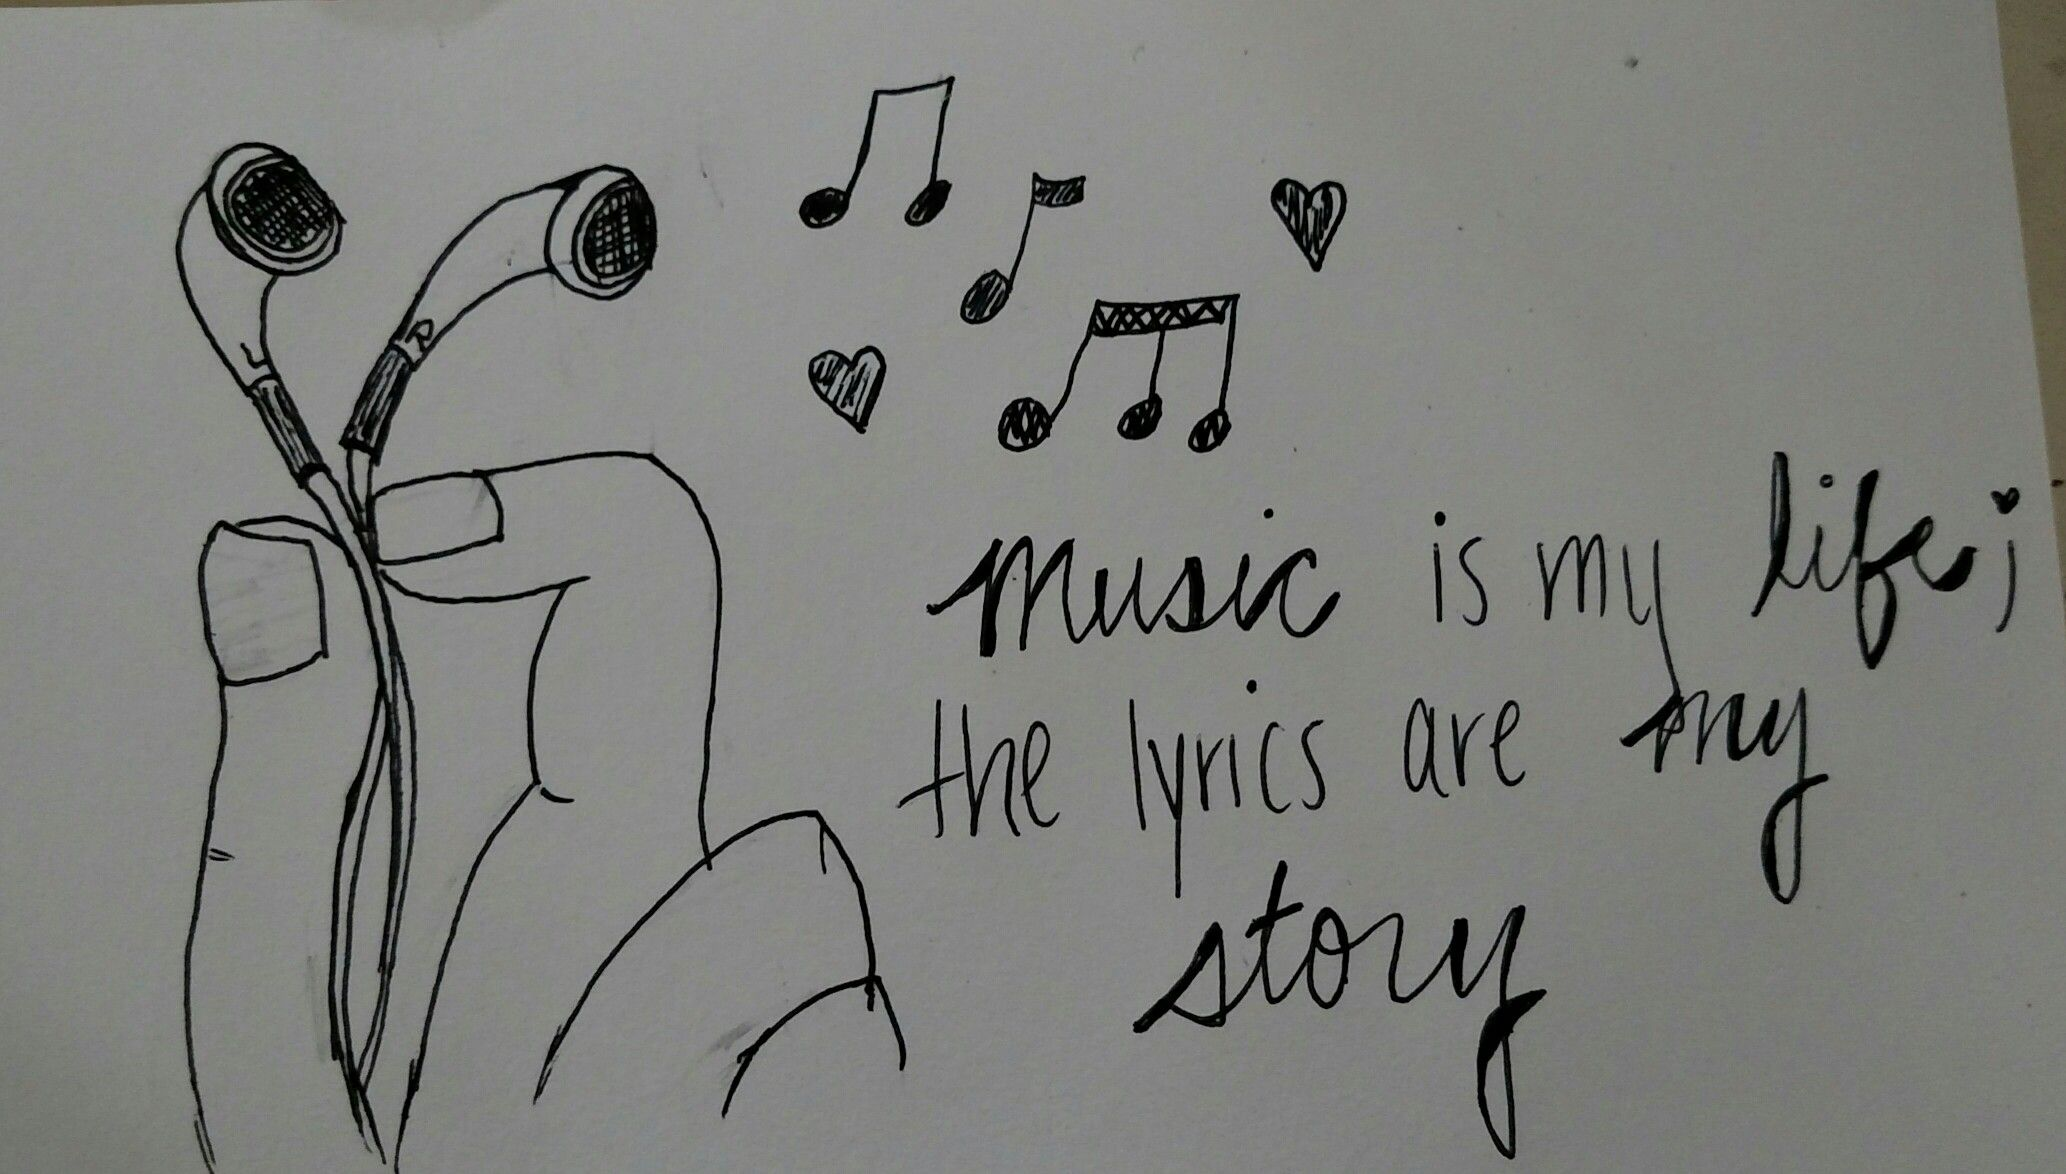 ❤Cute, original, simple drawing idea with a music quote ...